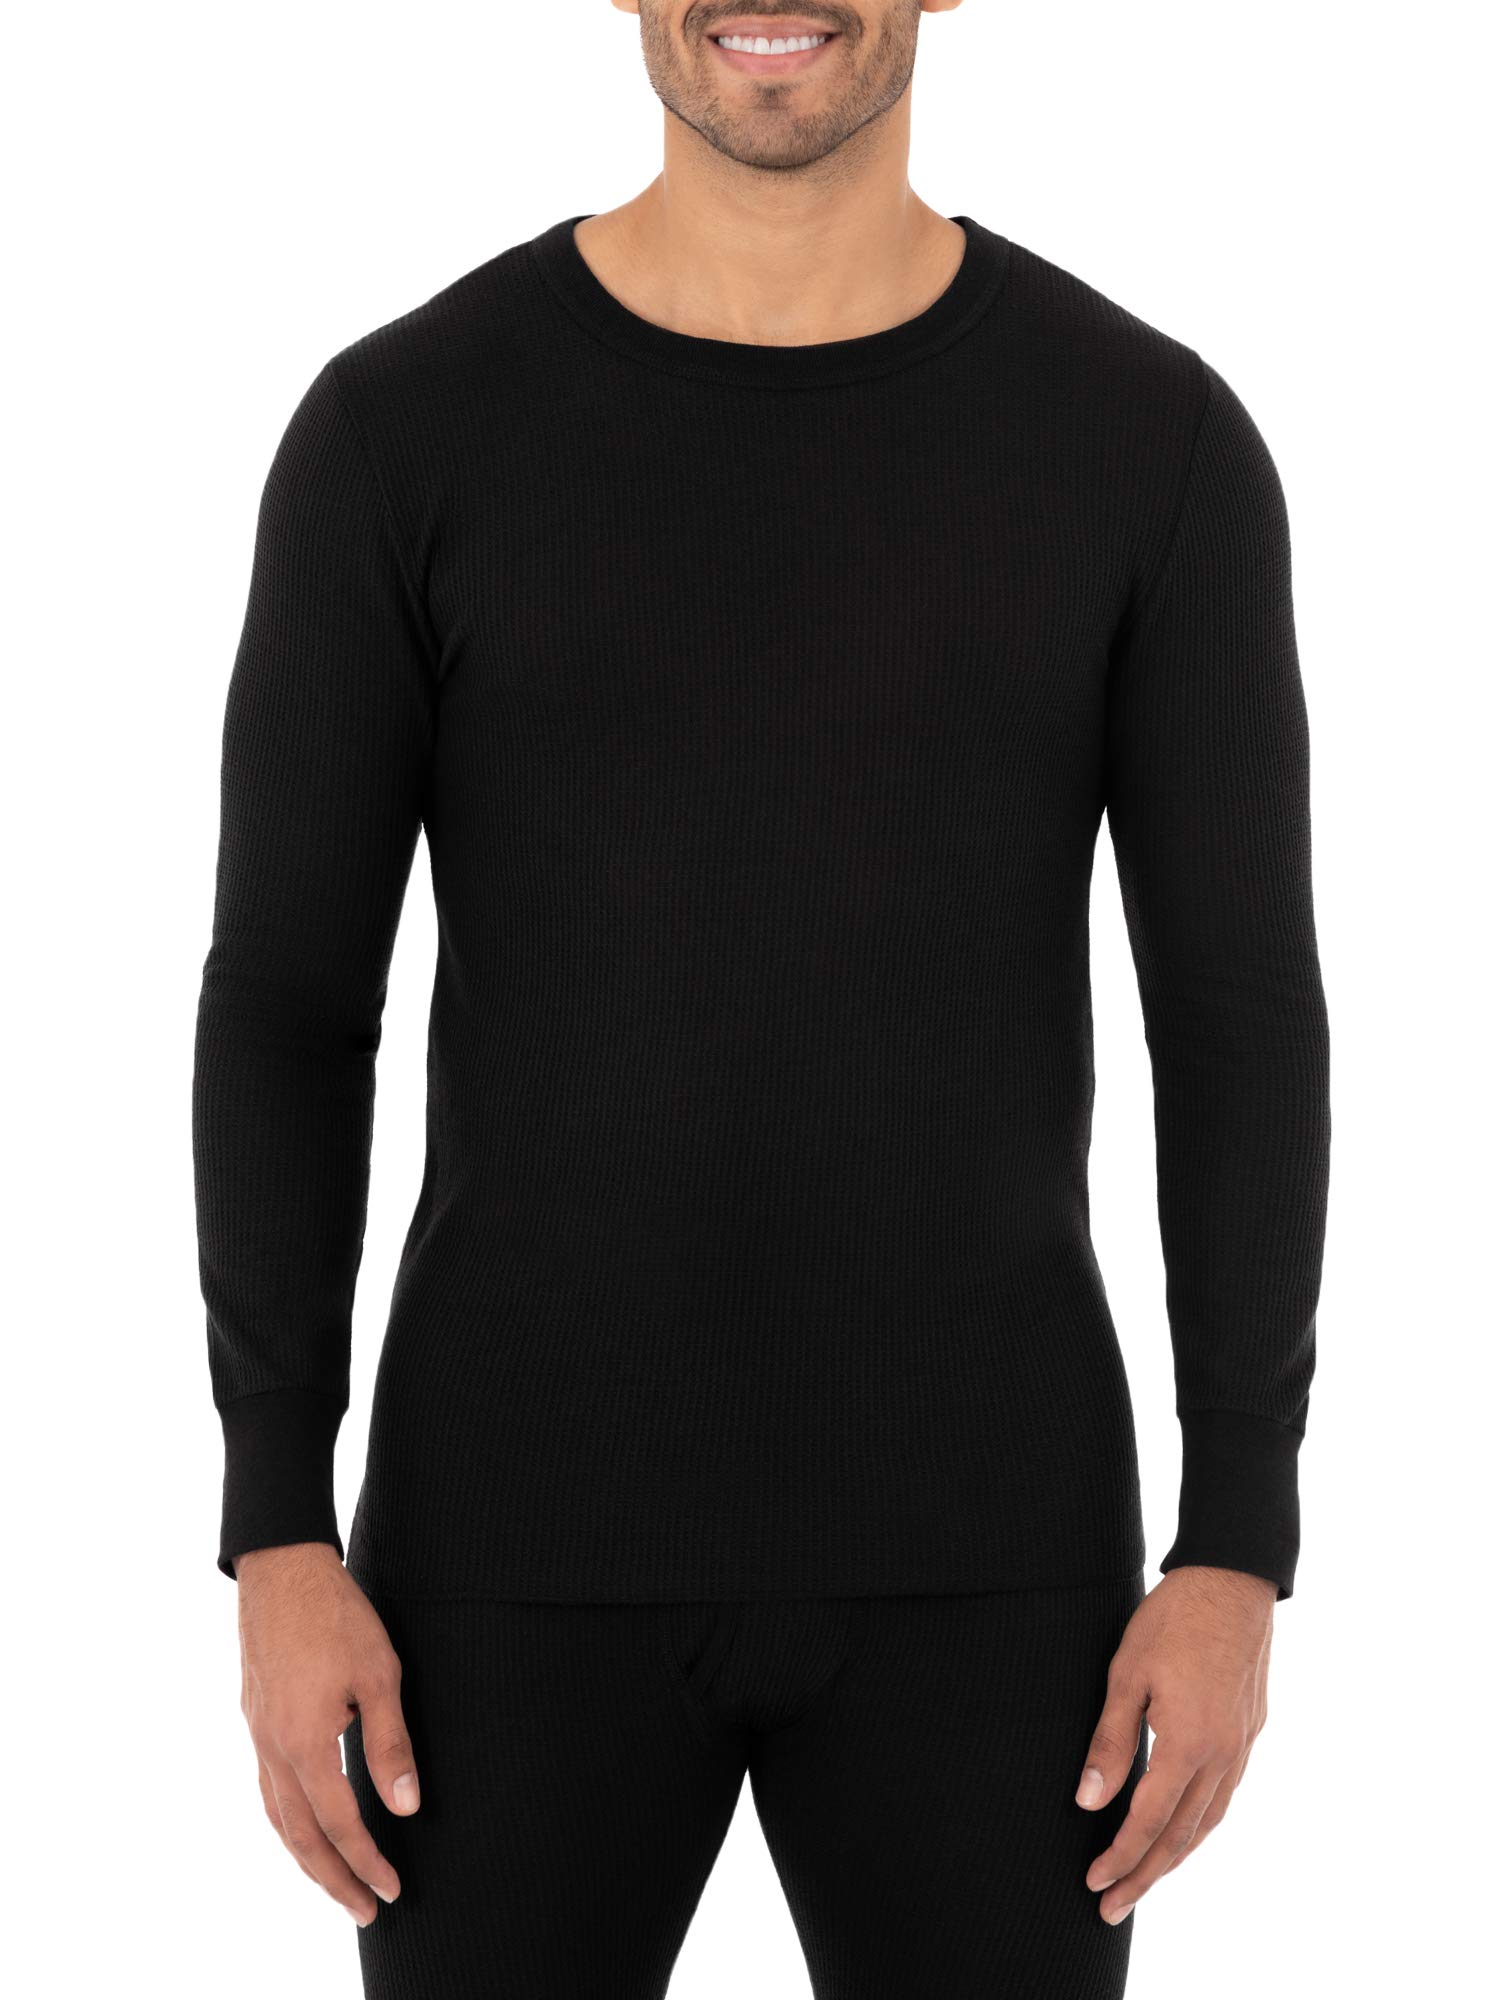 Fruit of the Loom Men's Classic Midweight Waffle Thermal Underwear Crew Top